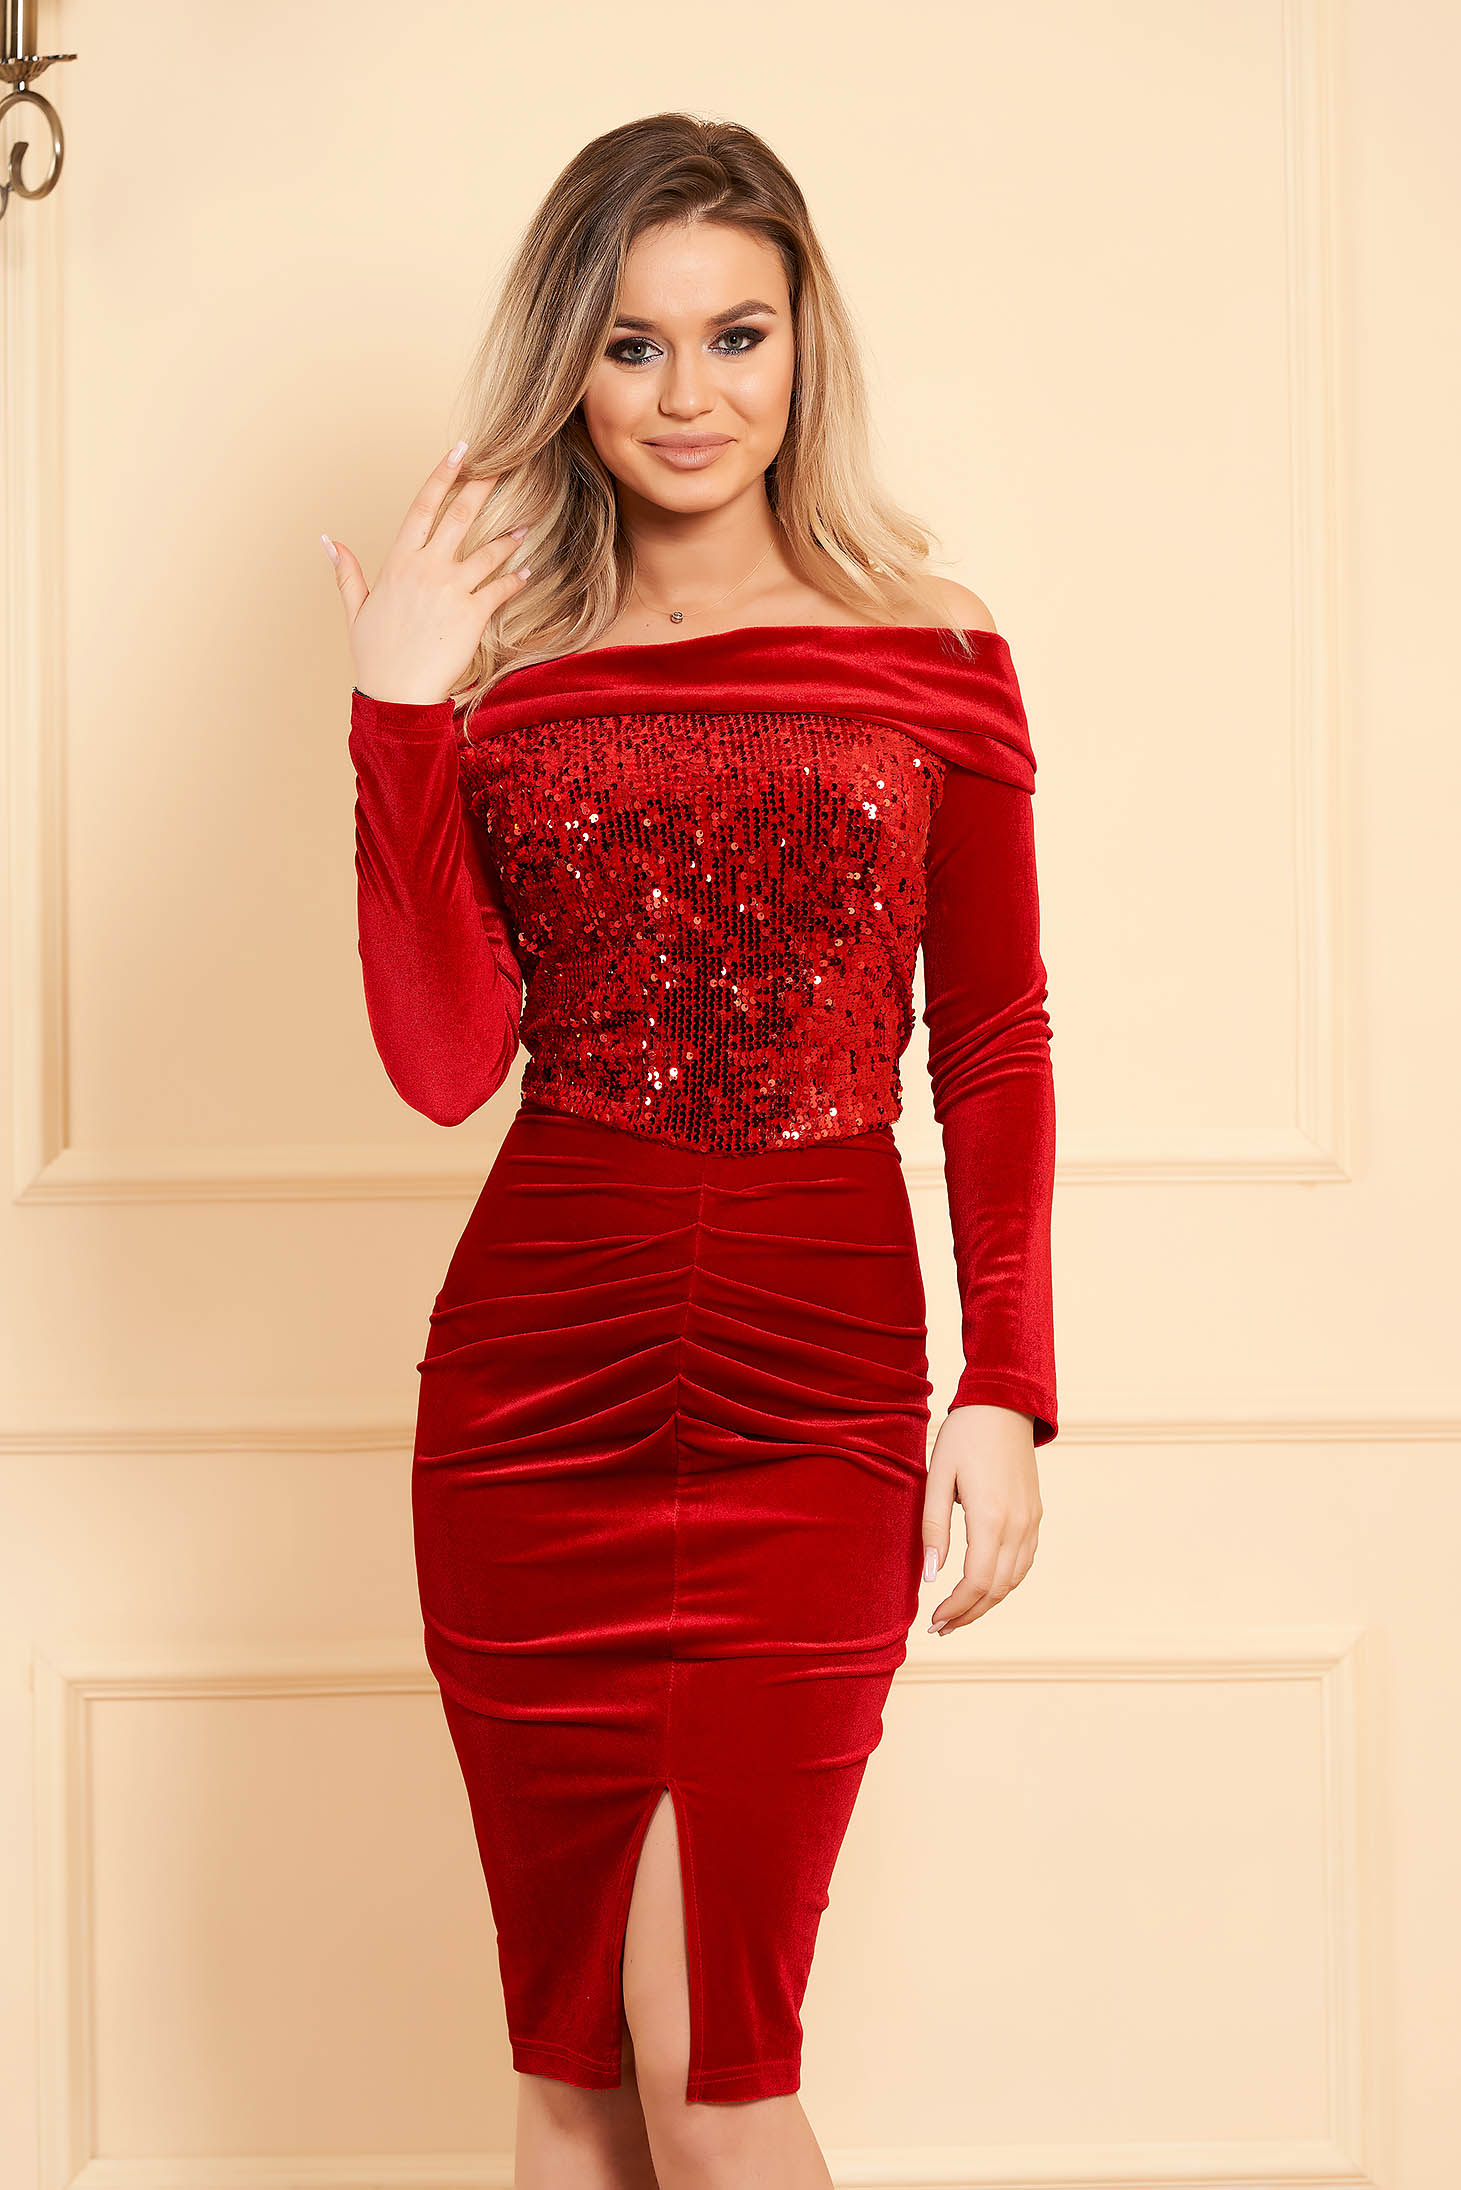 Red dress occasional midi pencil velvet with sequin embellished details long sleeved naked shoulders without clothing